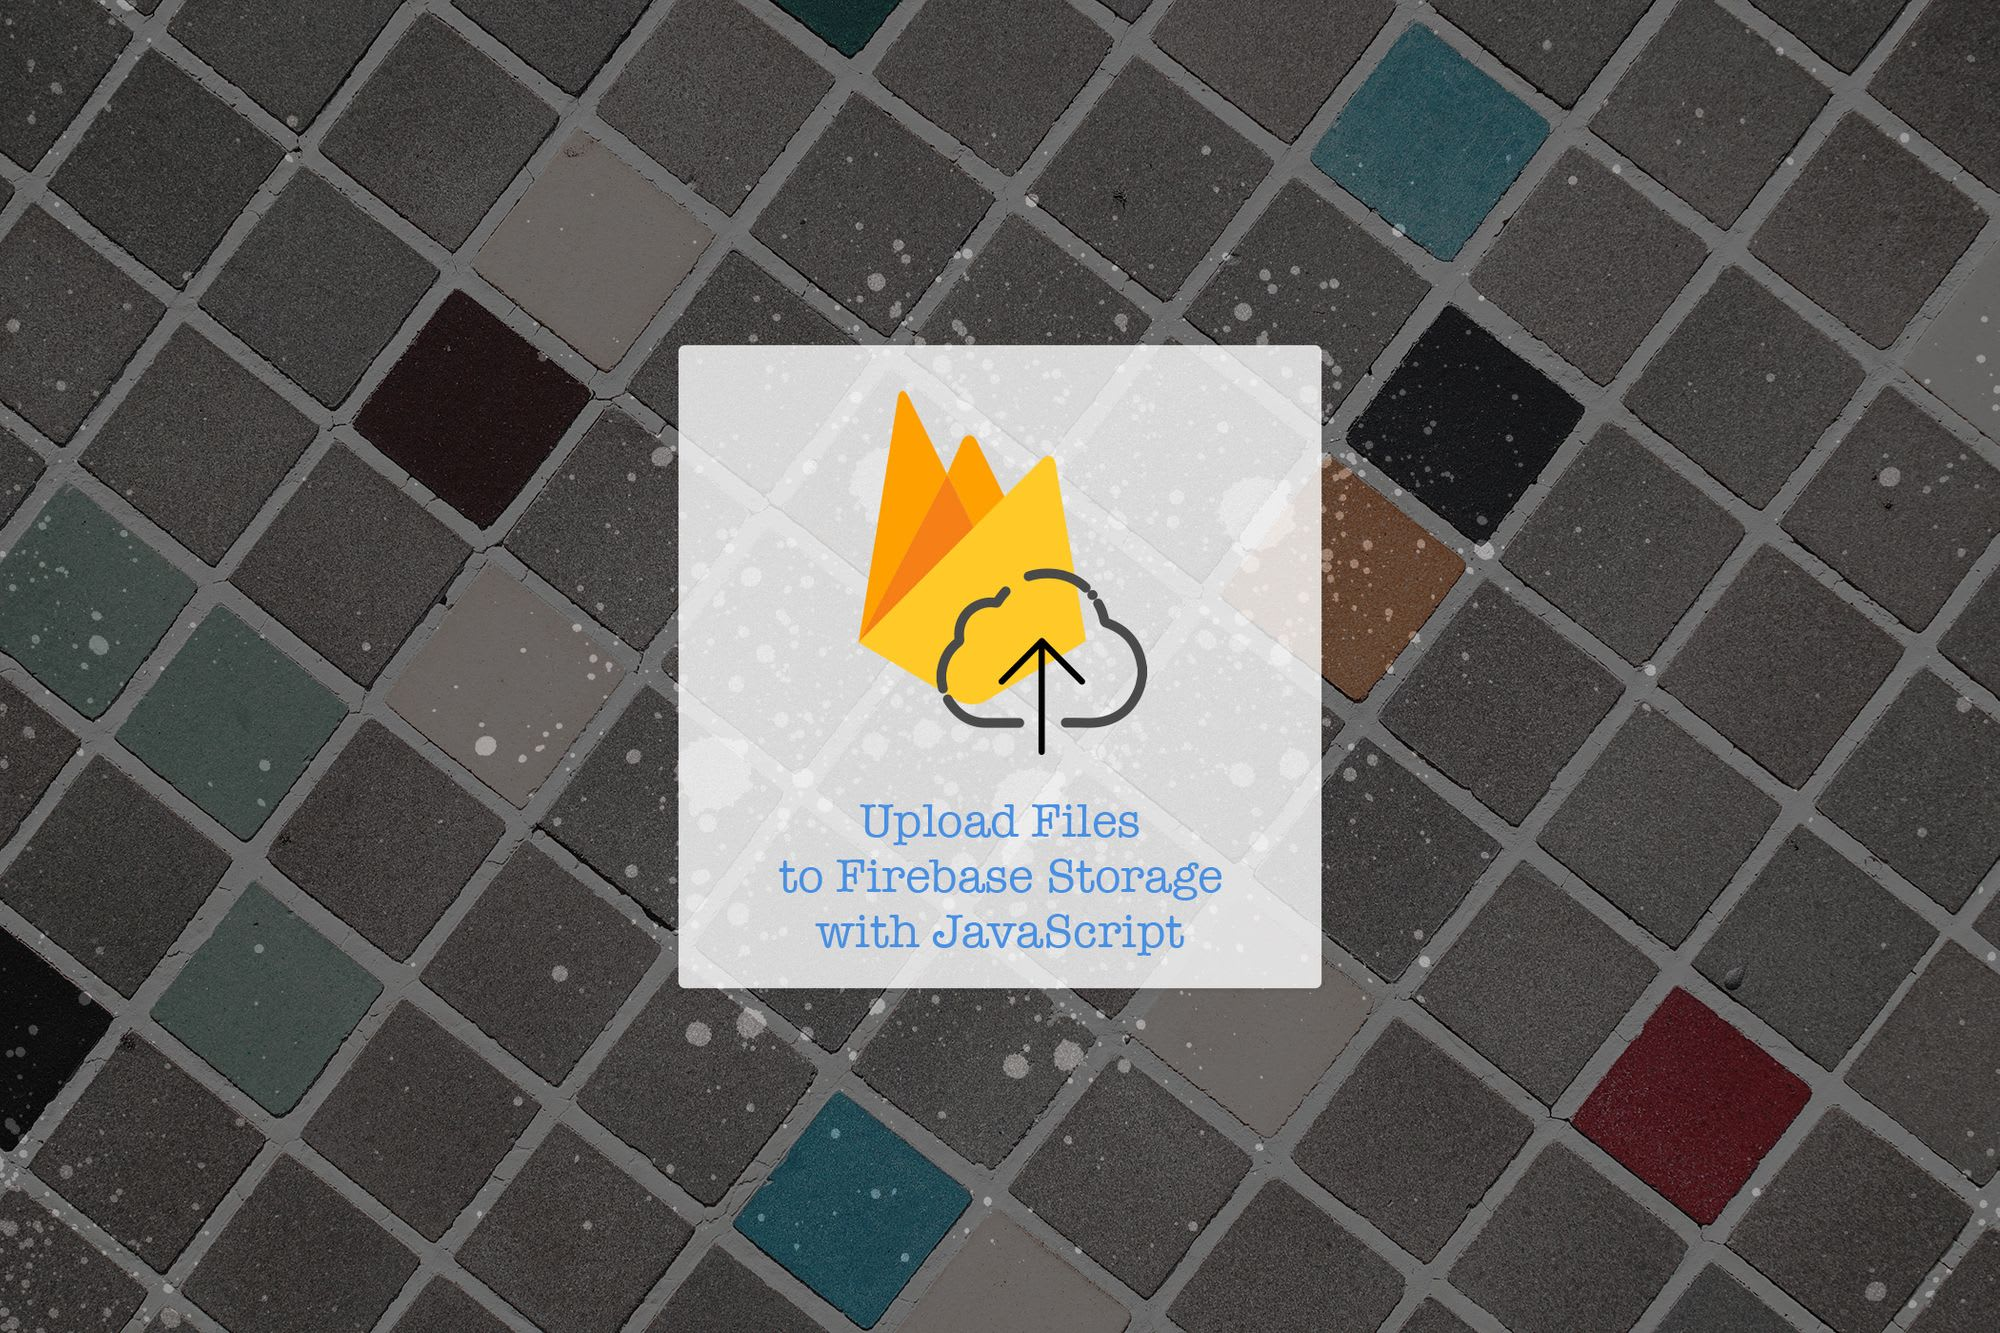 Upload Files to Firebase Storage with JavaScript